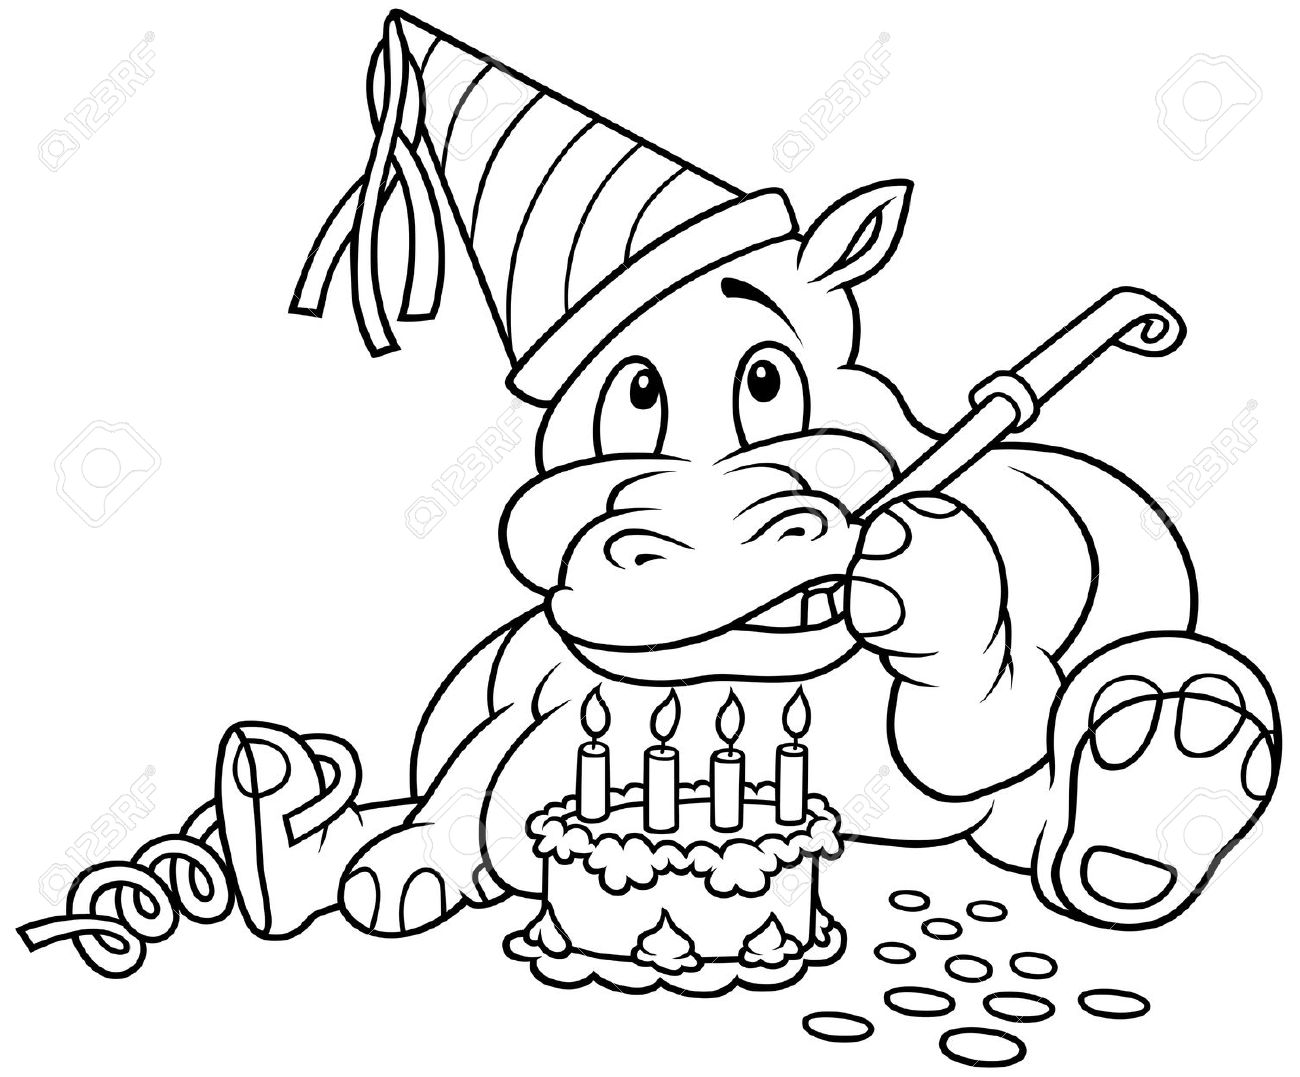 Clipart geburtstag schwarz wei clip art transparent Hippo And Cake - Black And White Cartoon Illustration, Vector ... clip art transparent